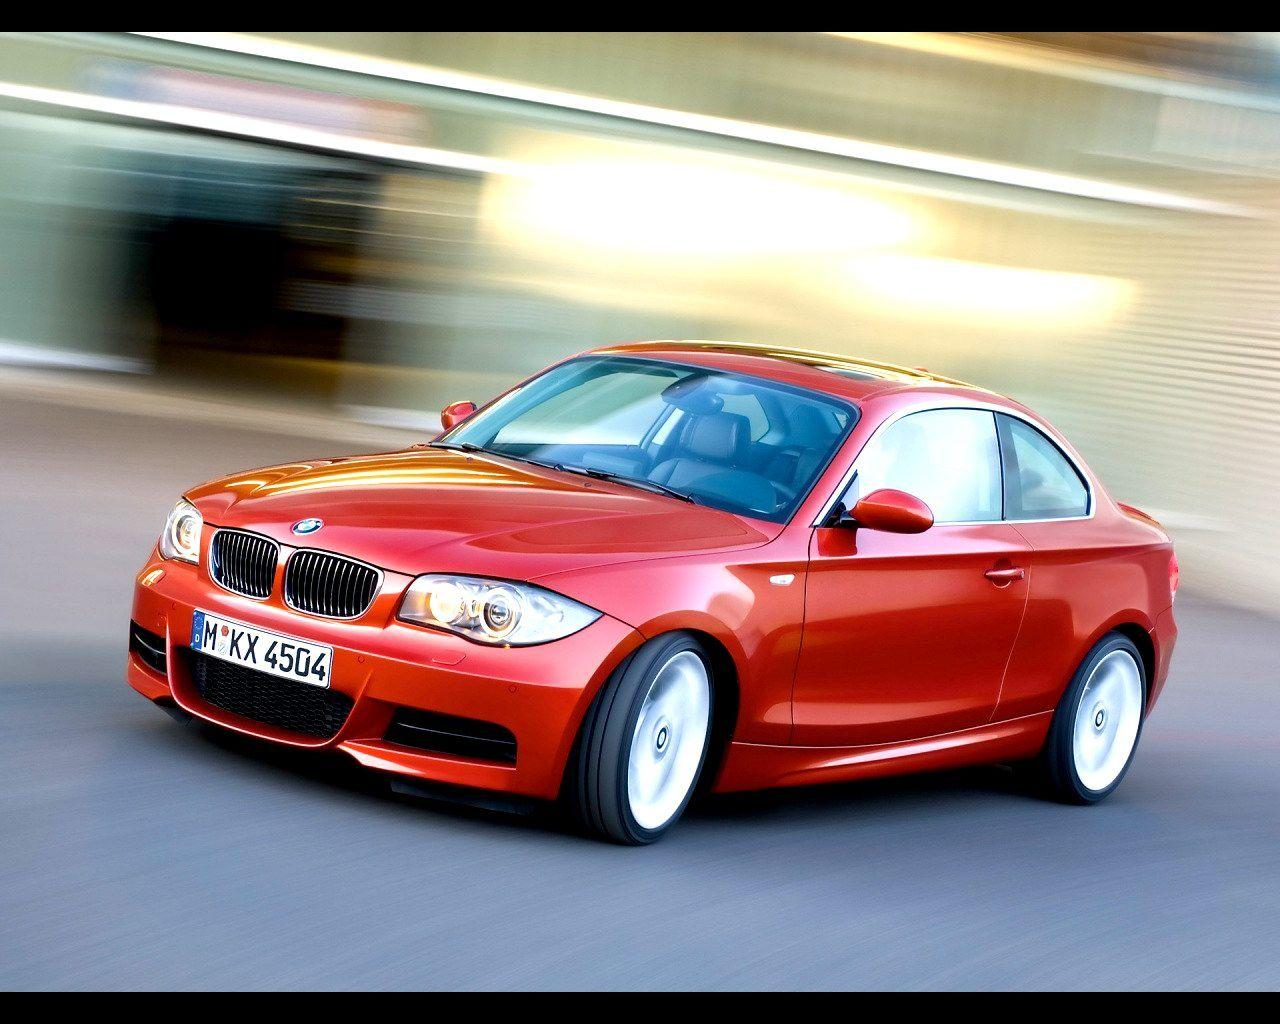 2008 BMW 1 Series Coupe Wallpaper 09 - 1280x1024